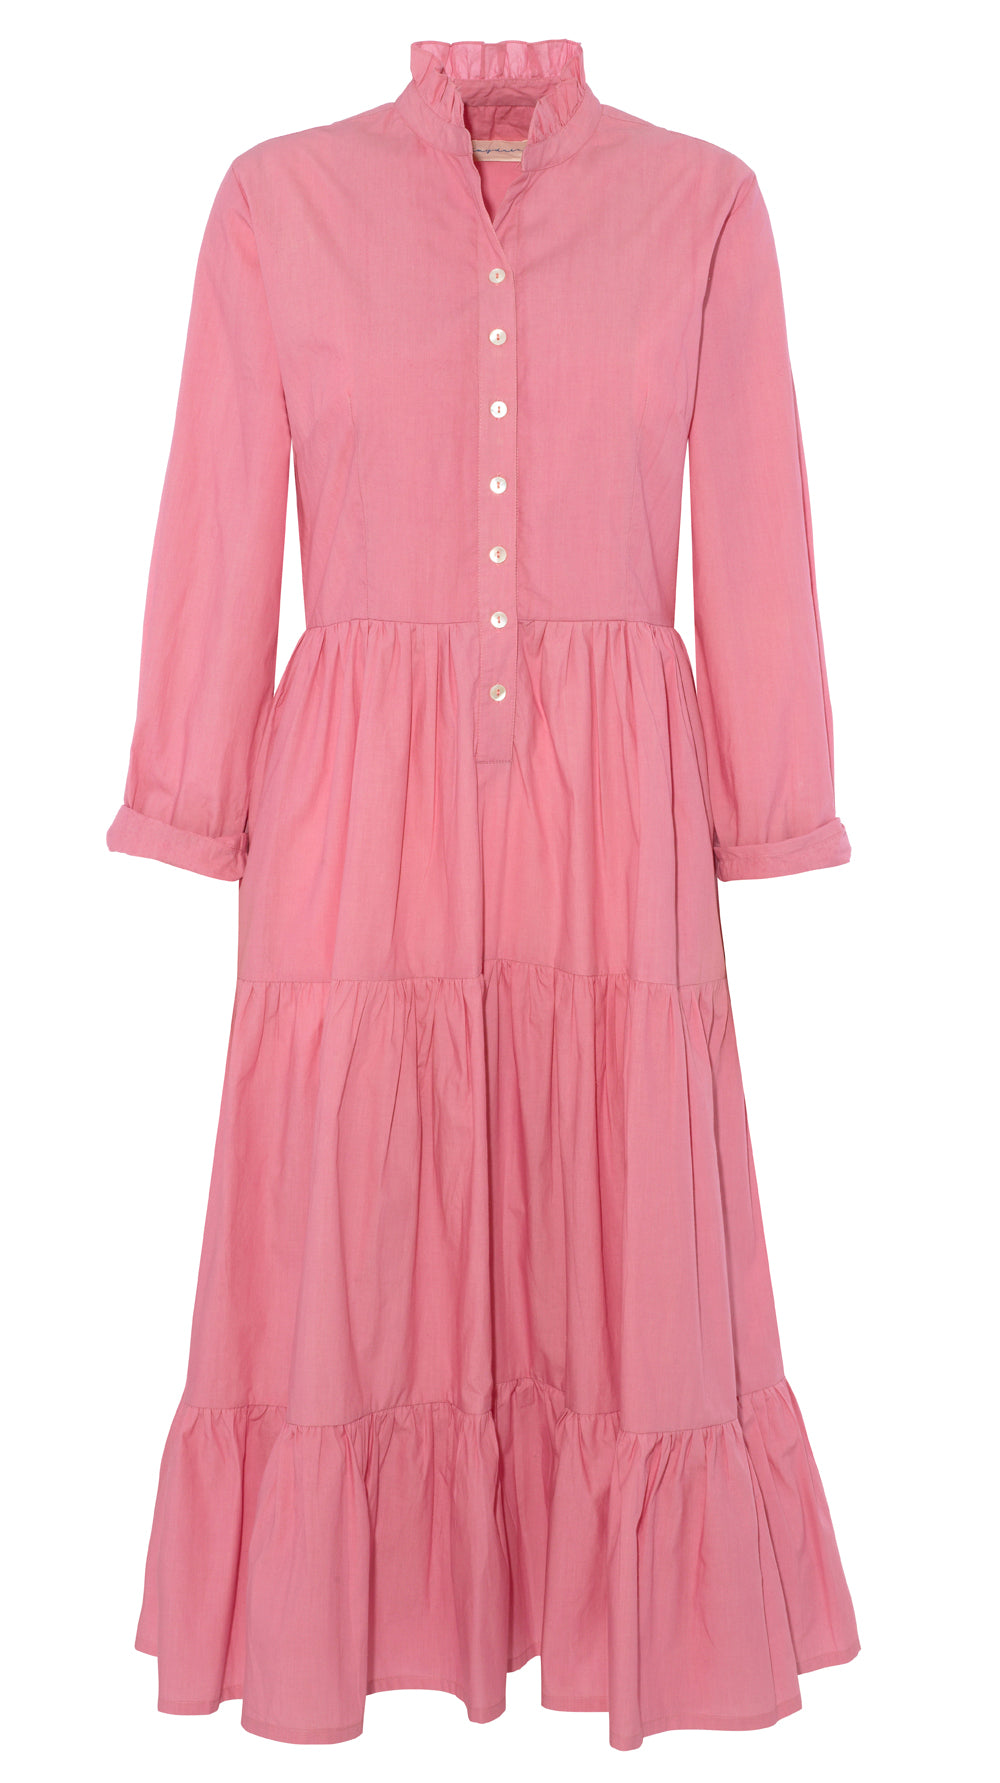 Dakota Dress, Pink Poplin